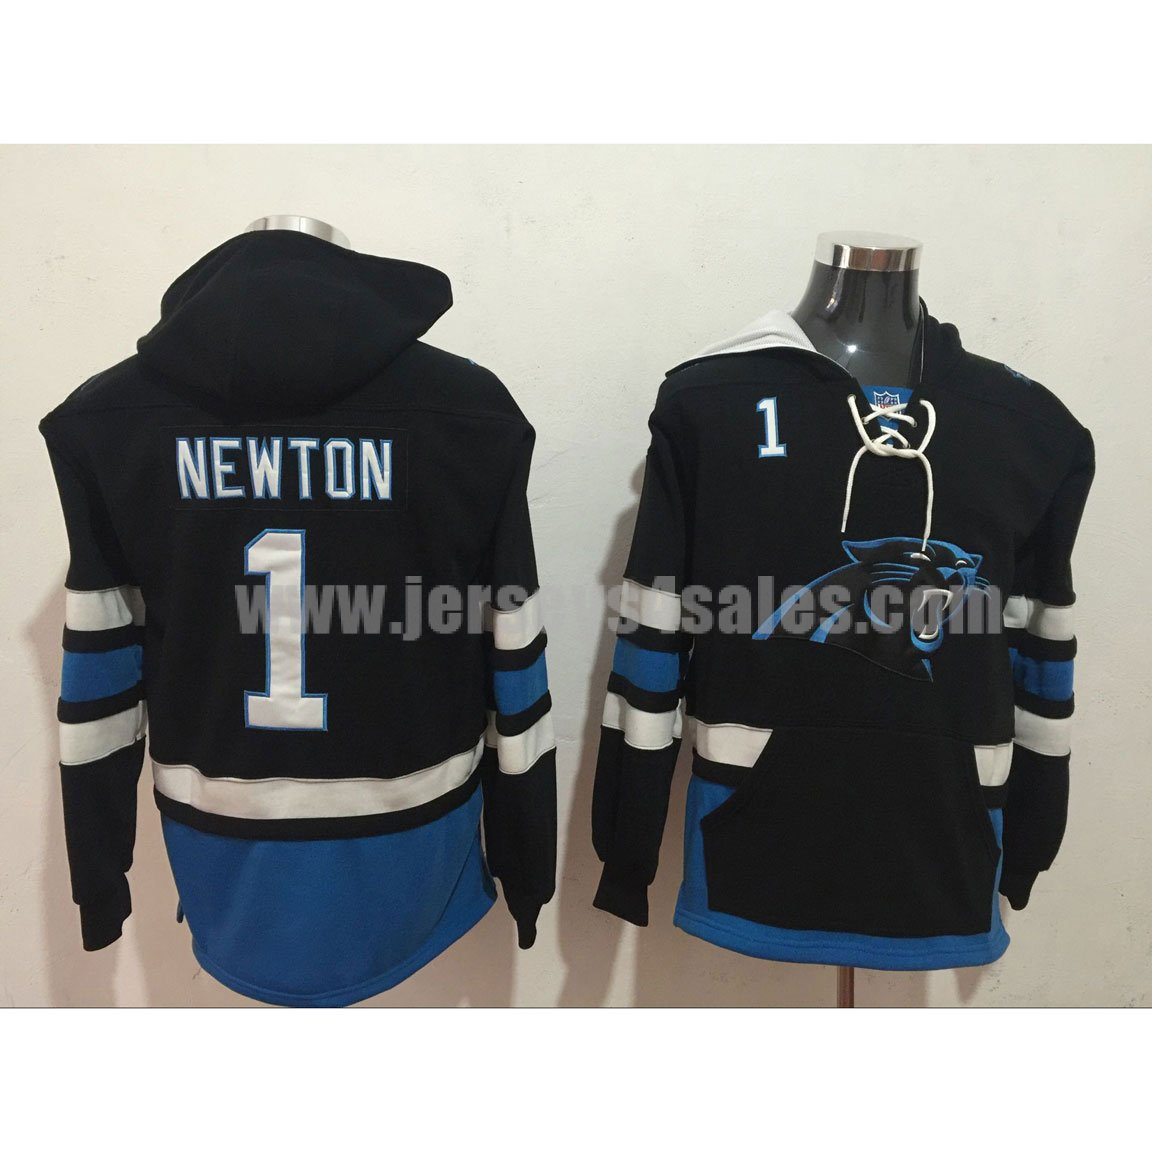 Men's Carolina Panthers #1 Cam Newton Black Lacer Heavyweight Pullover NFL Hoodie